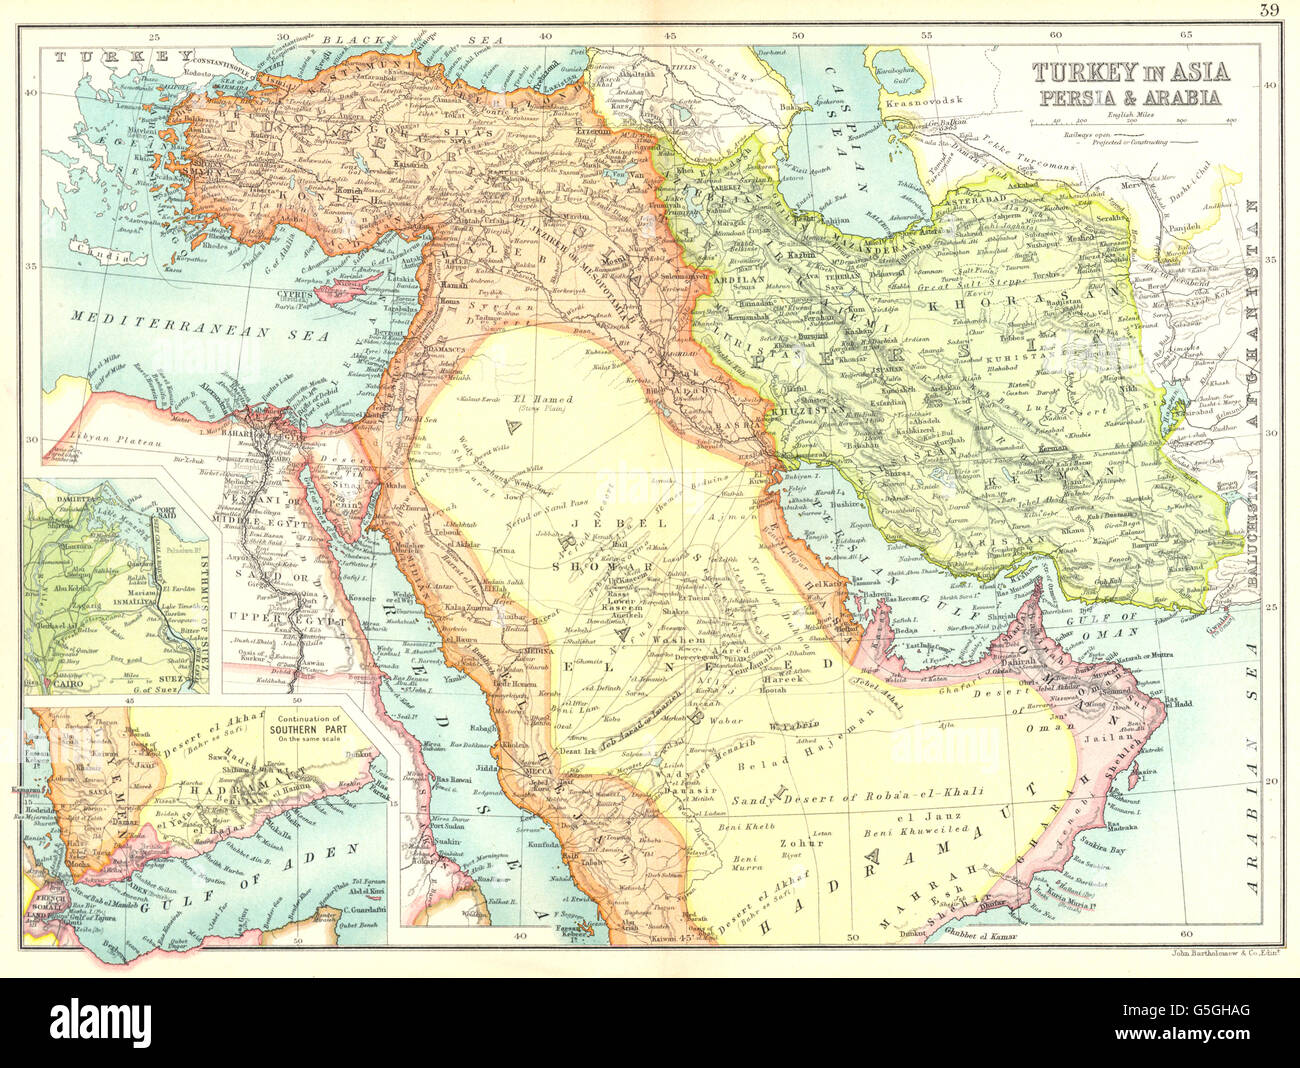 MIDDLE EAST:Turkey in Asia Persia Arabia;Suez Canal; Gulf of ...